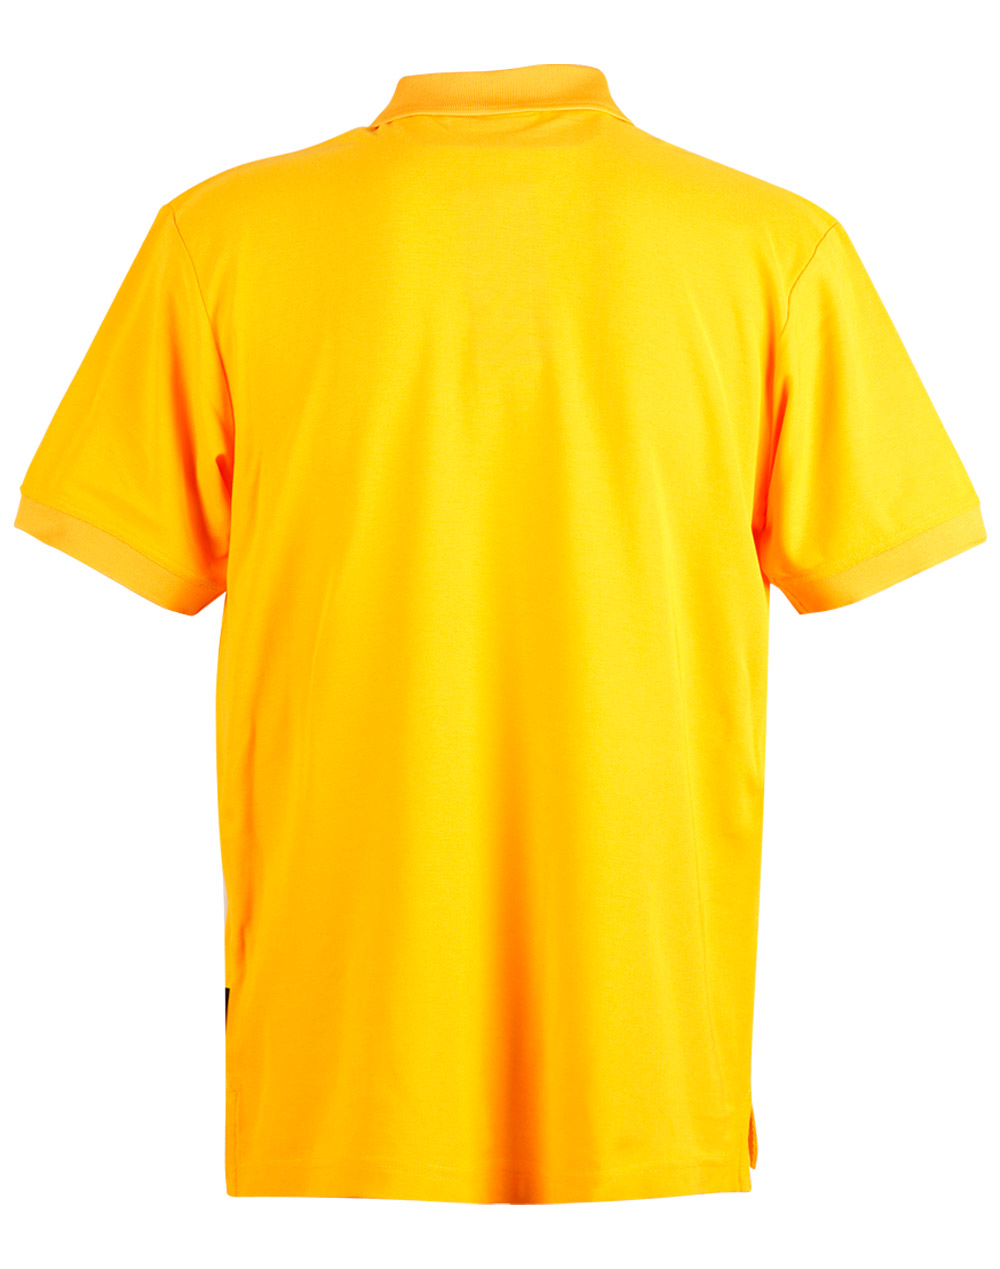 https://s3-ap-southeast-1.amazonaws.com/ws-imgs/POLOSHIRTS/PS63_Gold_Back.jpg